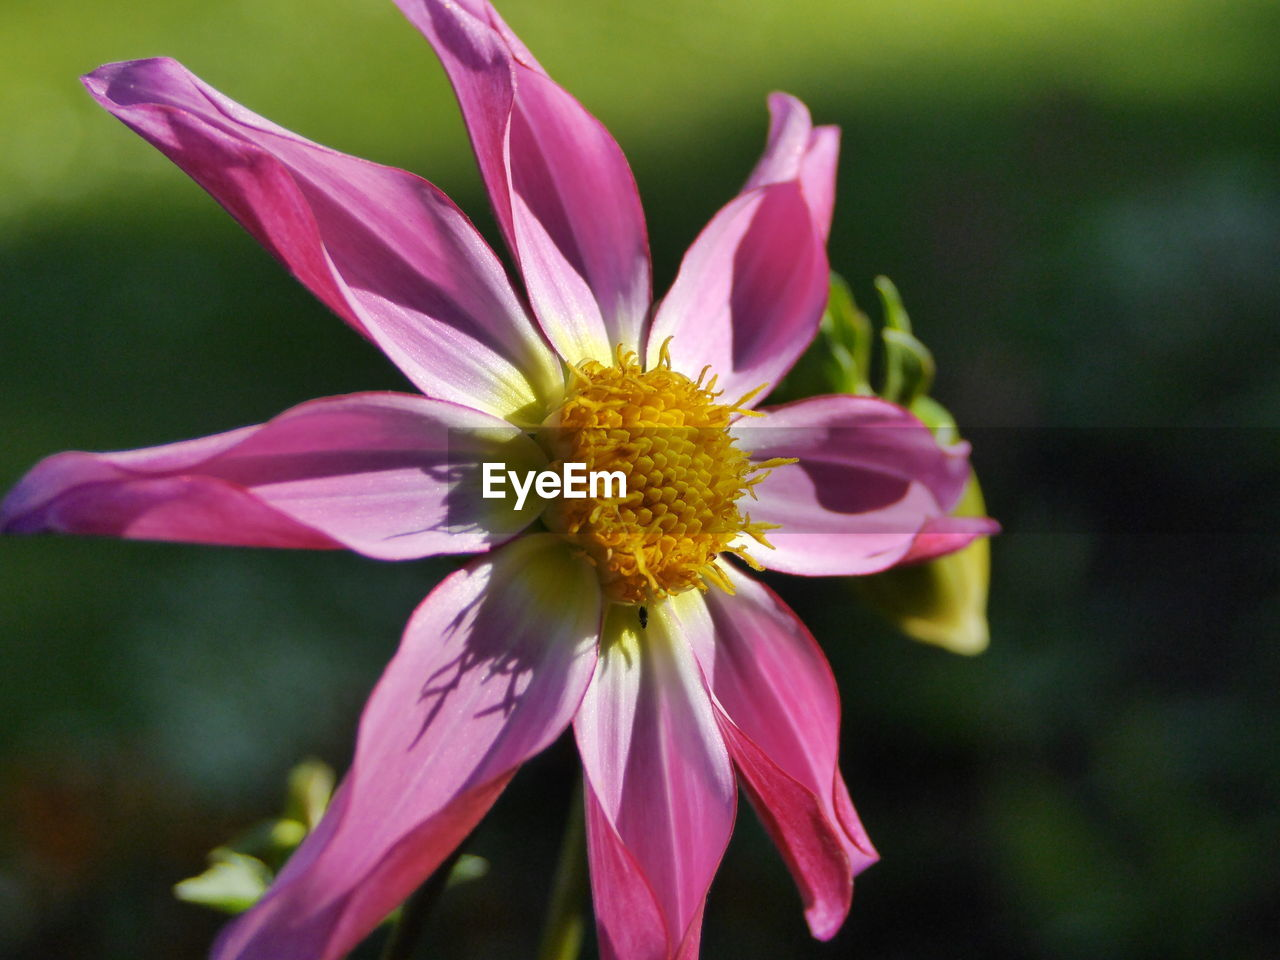 flower, petal, fragility, flower head, beauty in nature, nature, freshness, growth, yellow, close-up, pollen, plant, blooming, focus on foreground, no people, outdoors, pink color, day